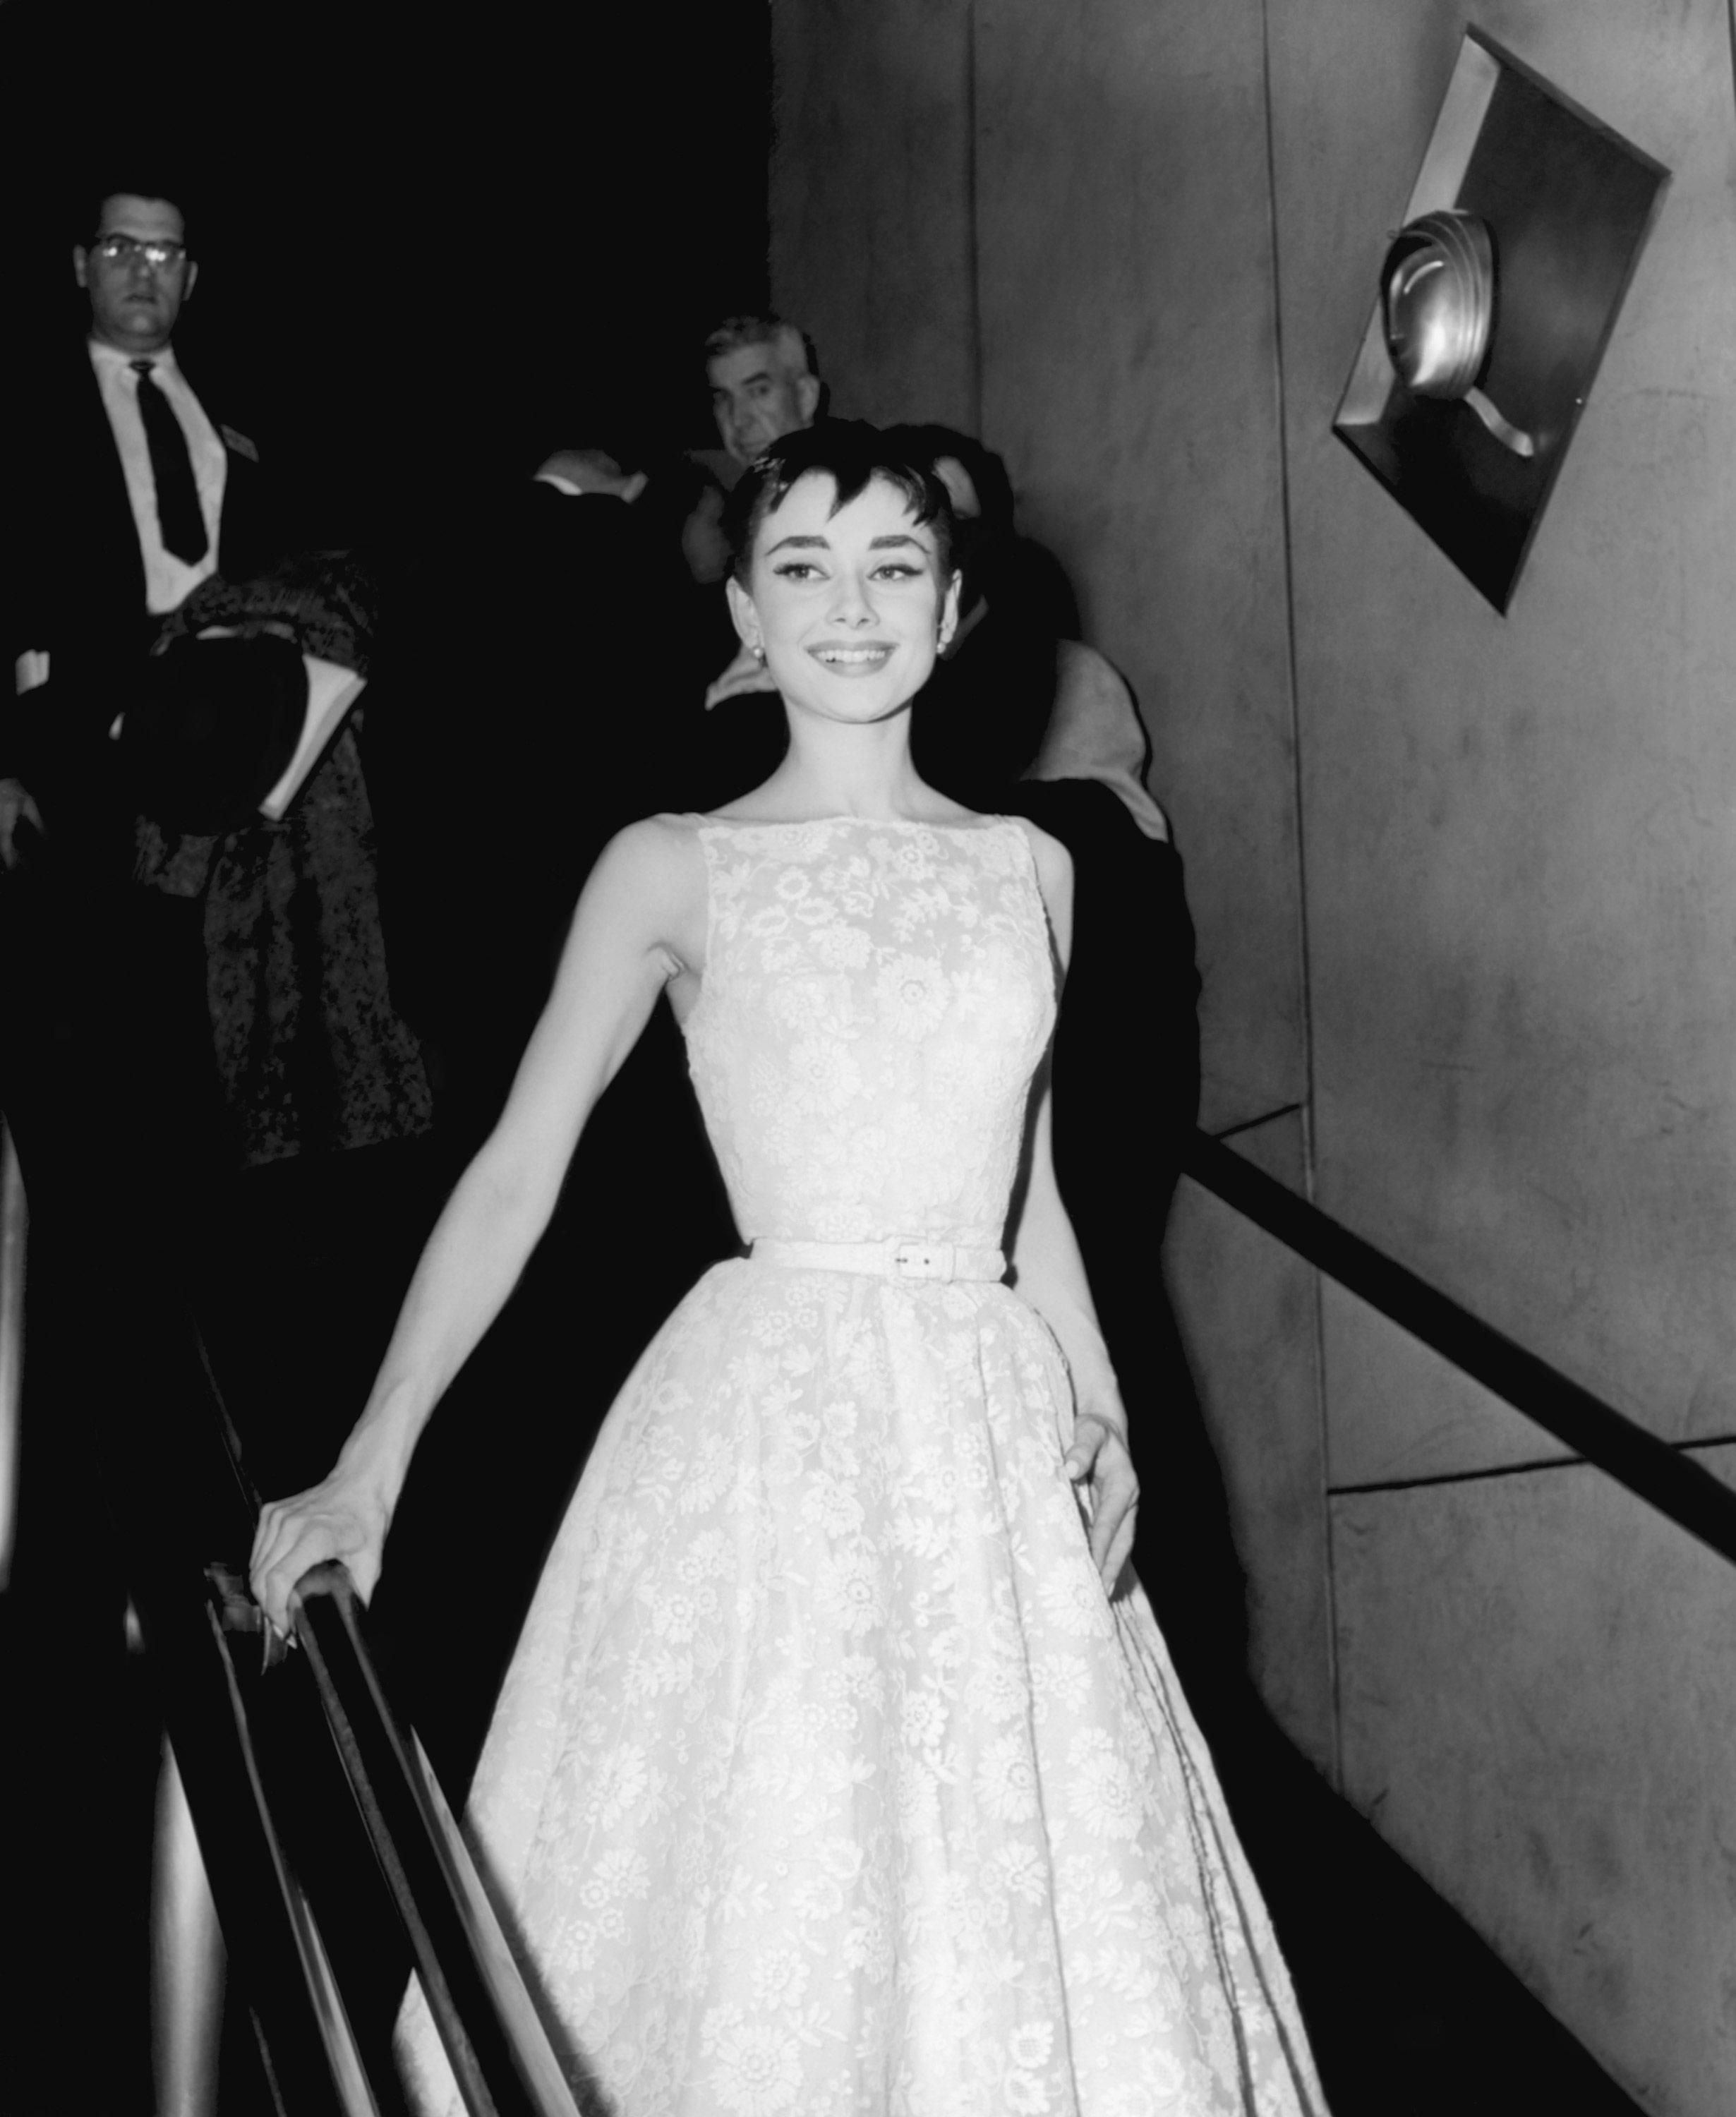 Audrey Hepburn in a white floral Givenchy dress at the Oscars in 1954